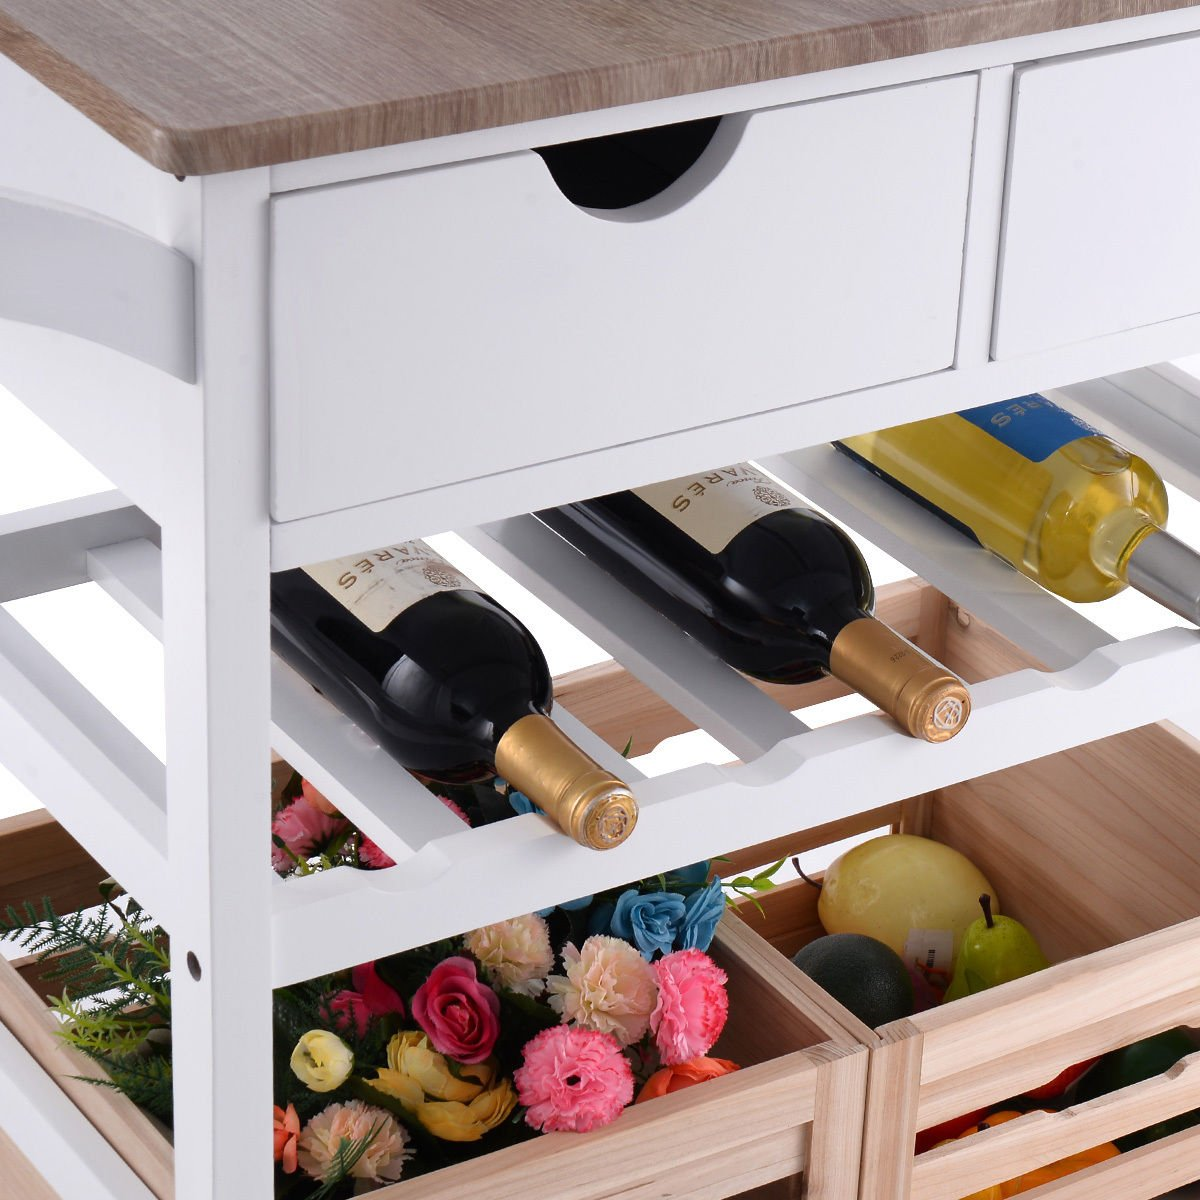 Costzon Kitchen Trolley Island Cart Dining Storage with Drawers Basket Wine Rack by Costzon (Image #6)